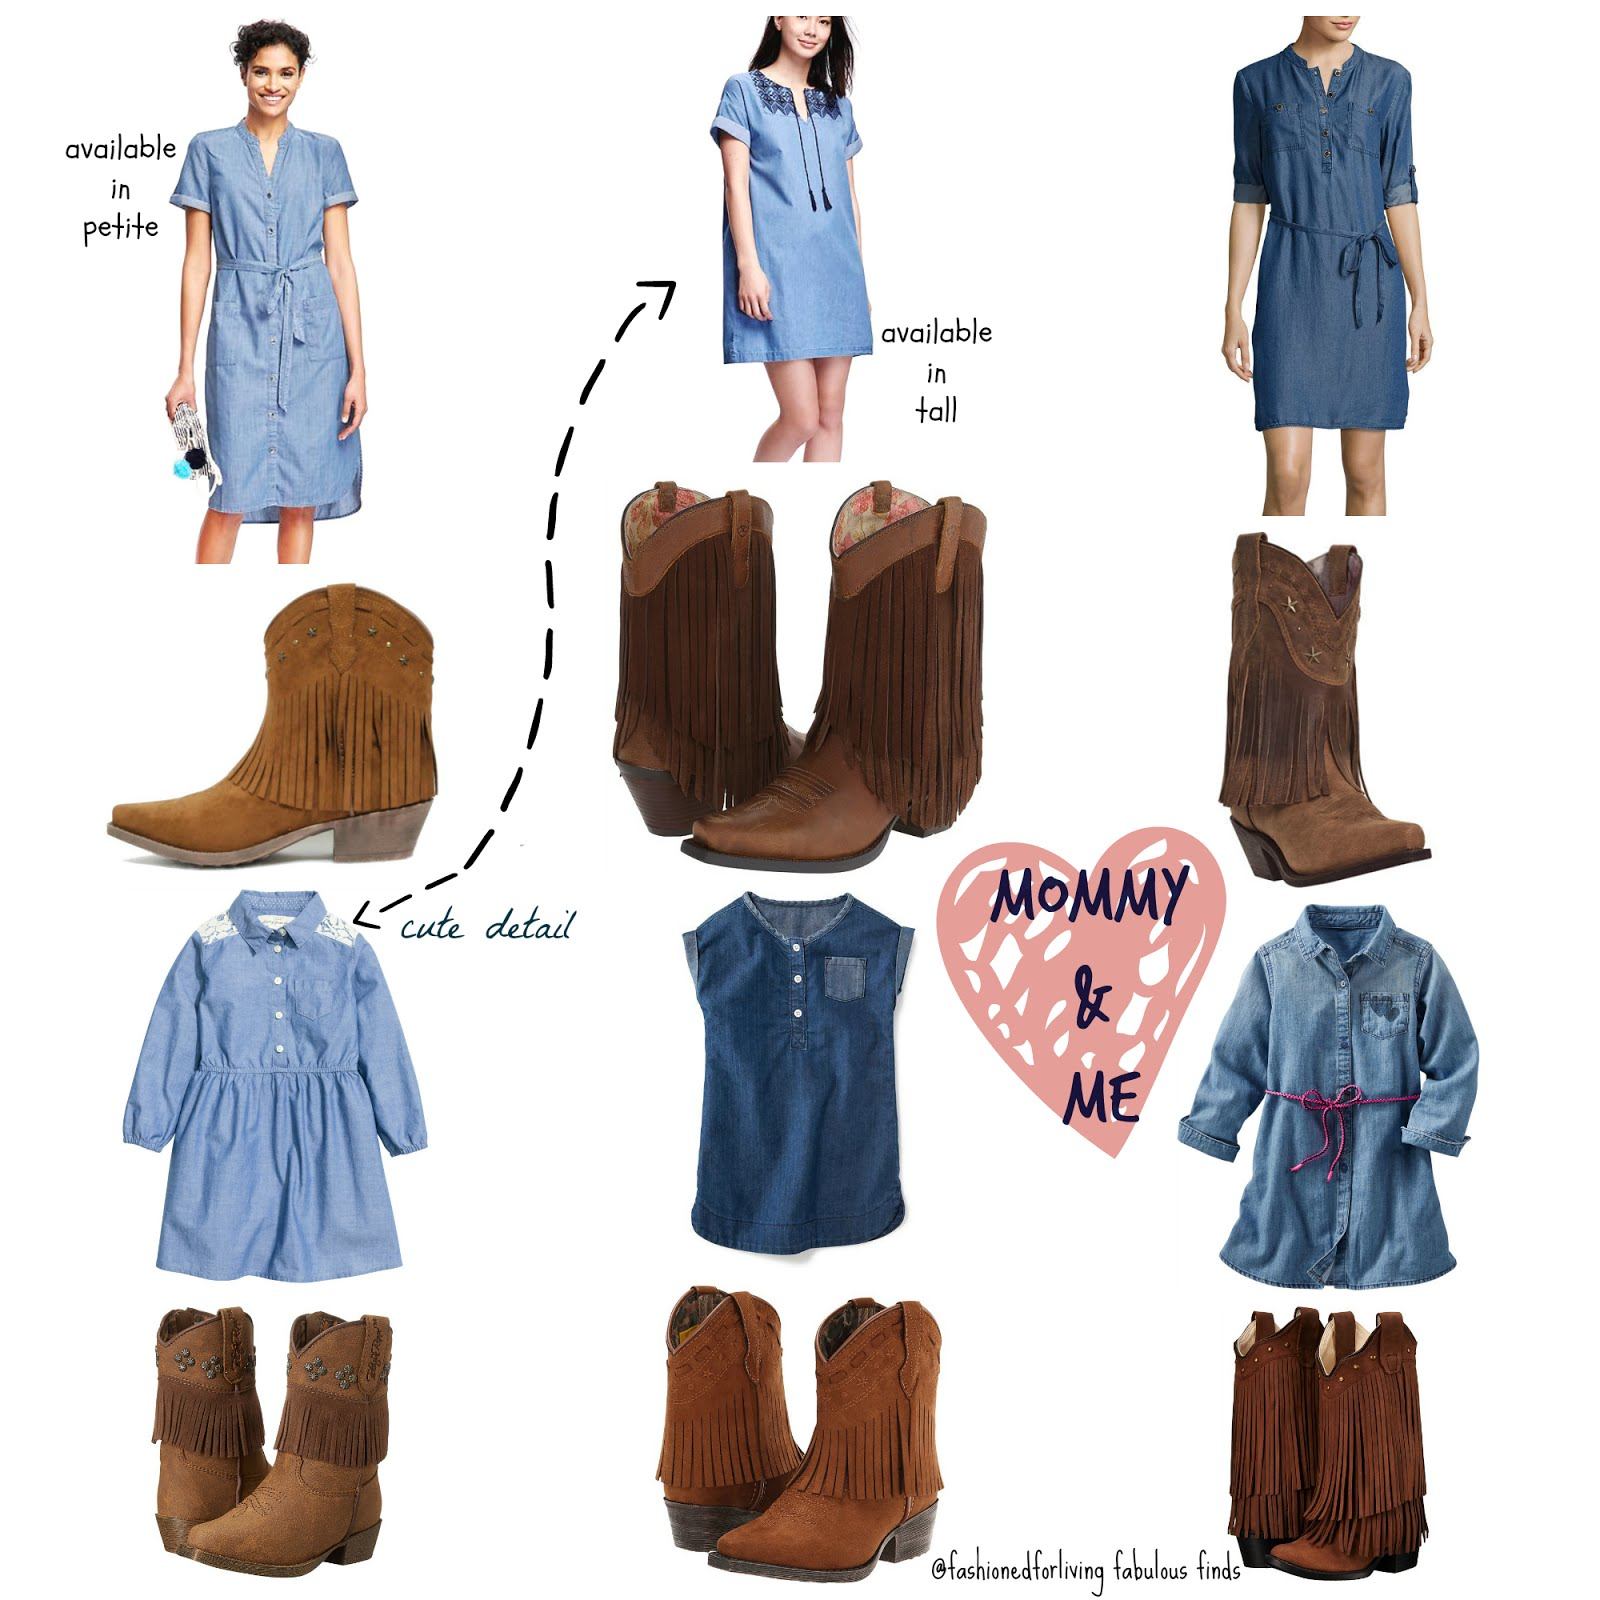 A Denim Dress Paired With Cowboy Boots Is Such Classic Look That Will Be Great For Summer And Transition Perfectly Into